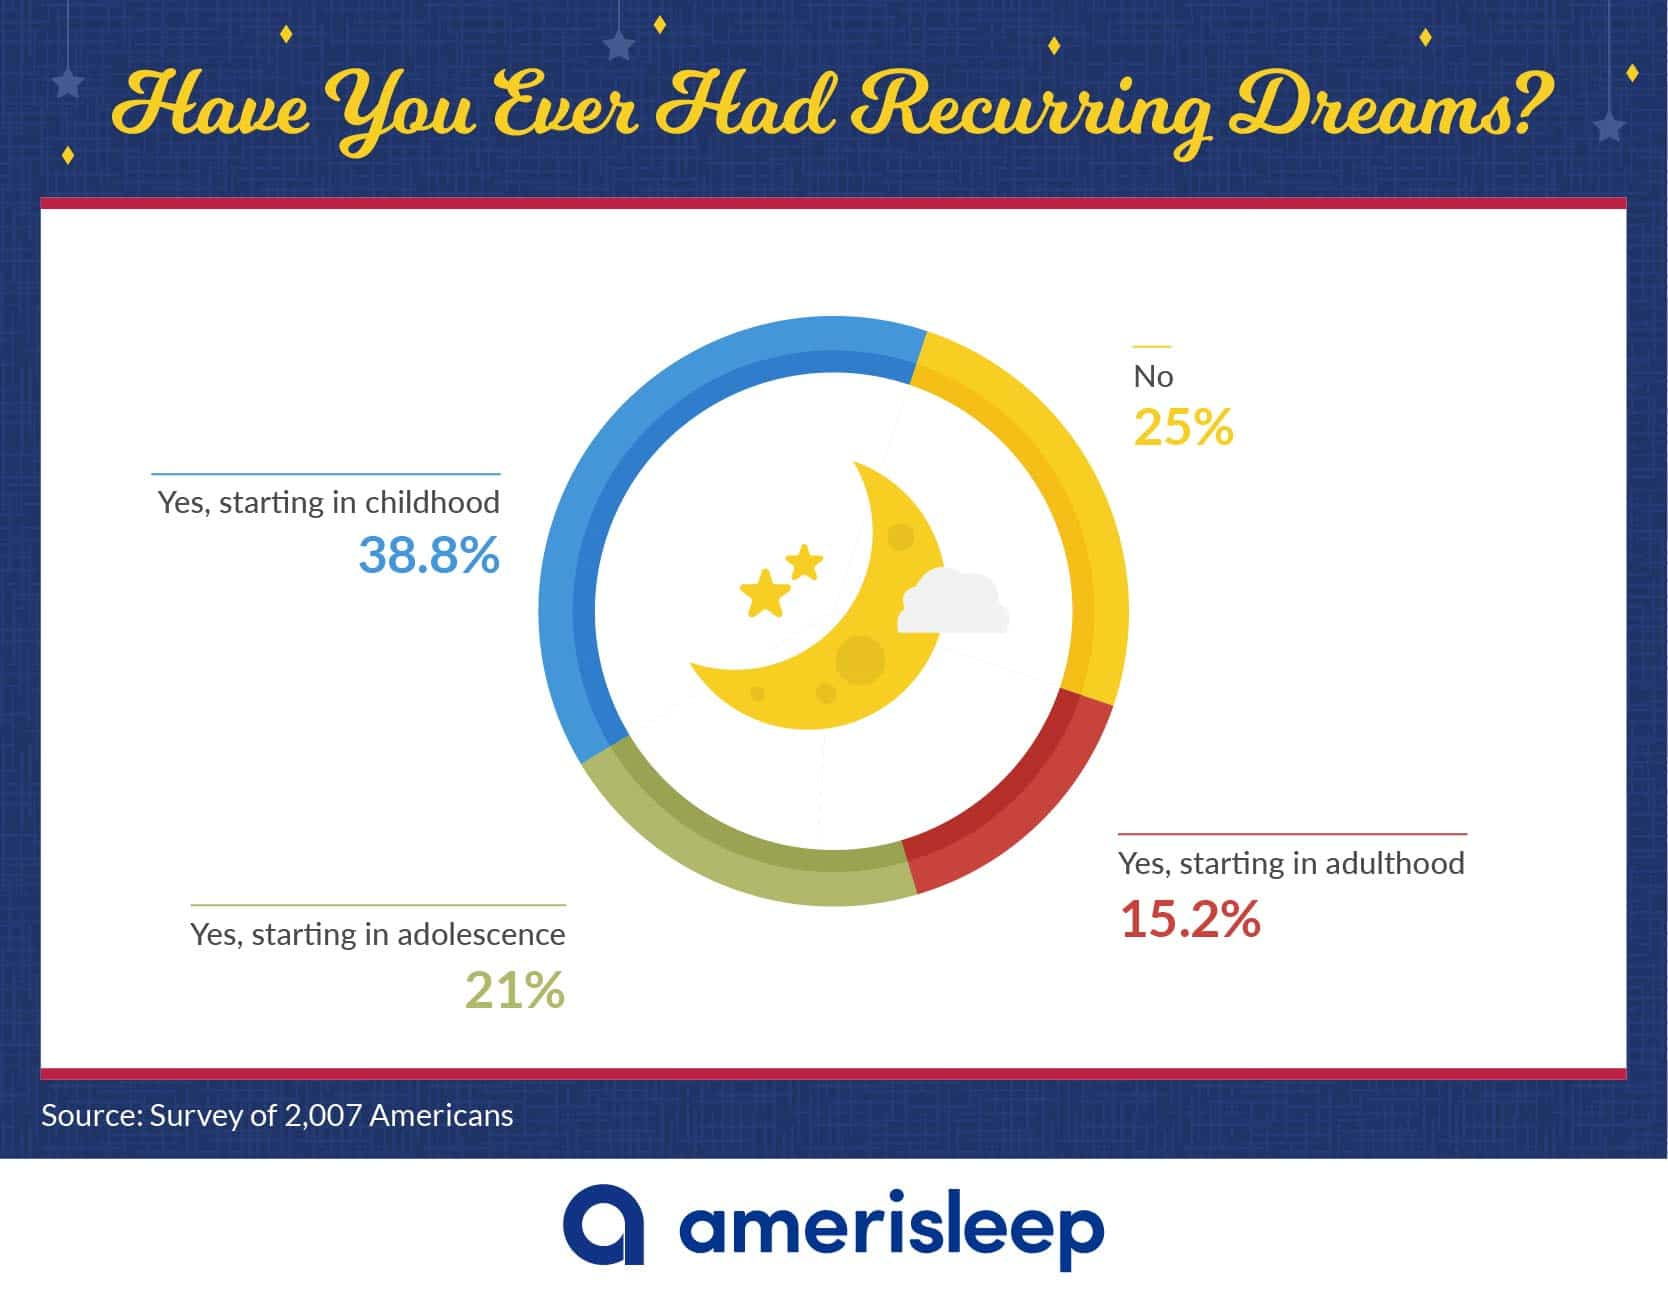 Have You Ever Had Recurring Dreams?